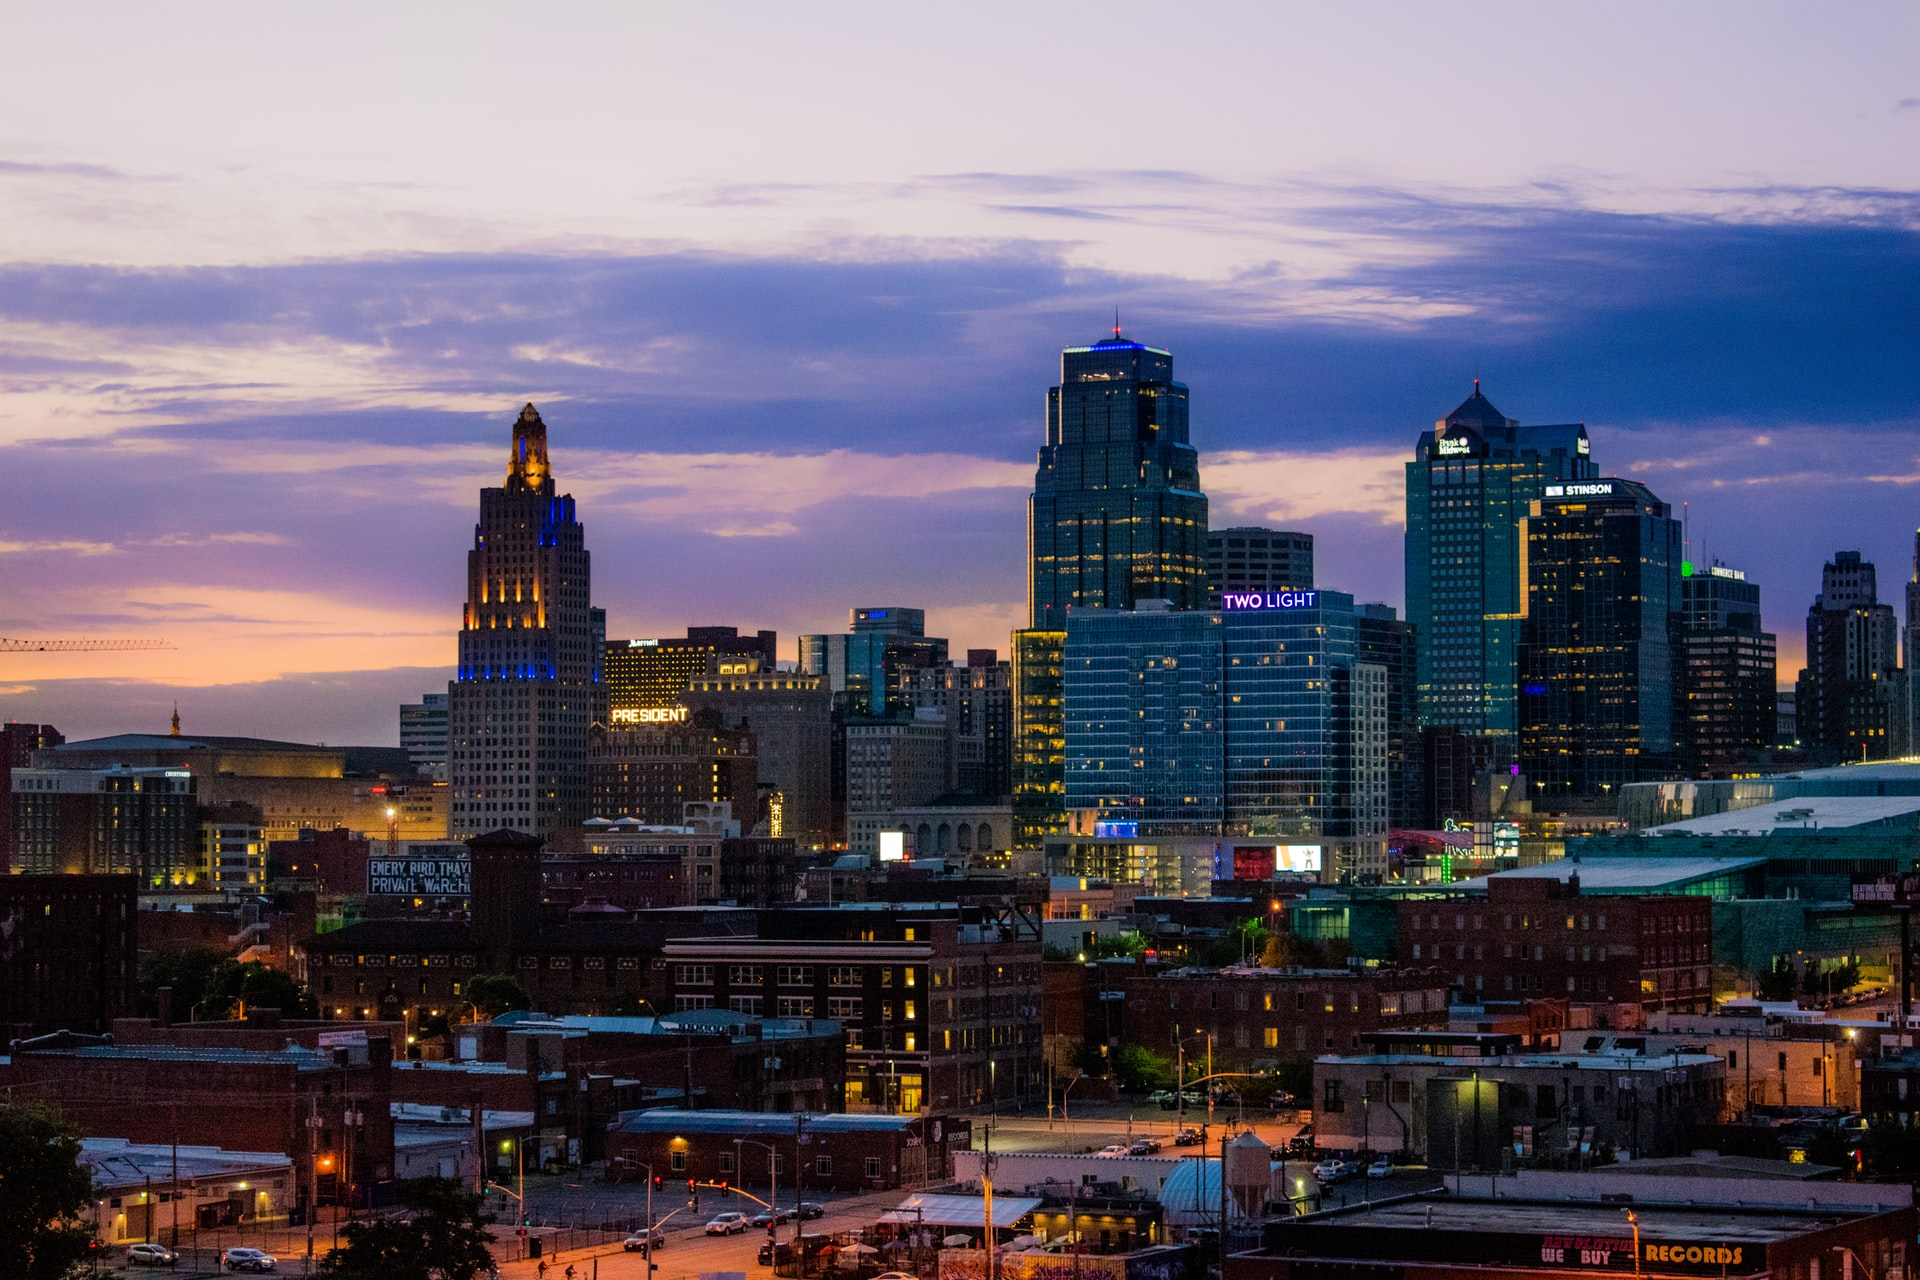 Kansas City, Missouri is one city that has found a high-tech way to upgrade its aging water infrastructure